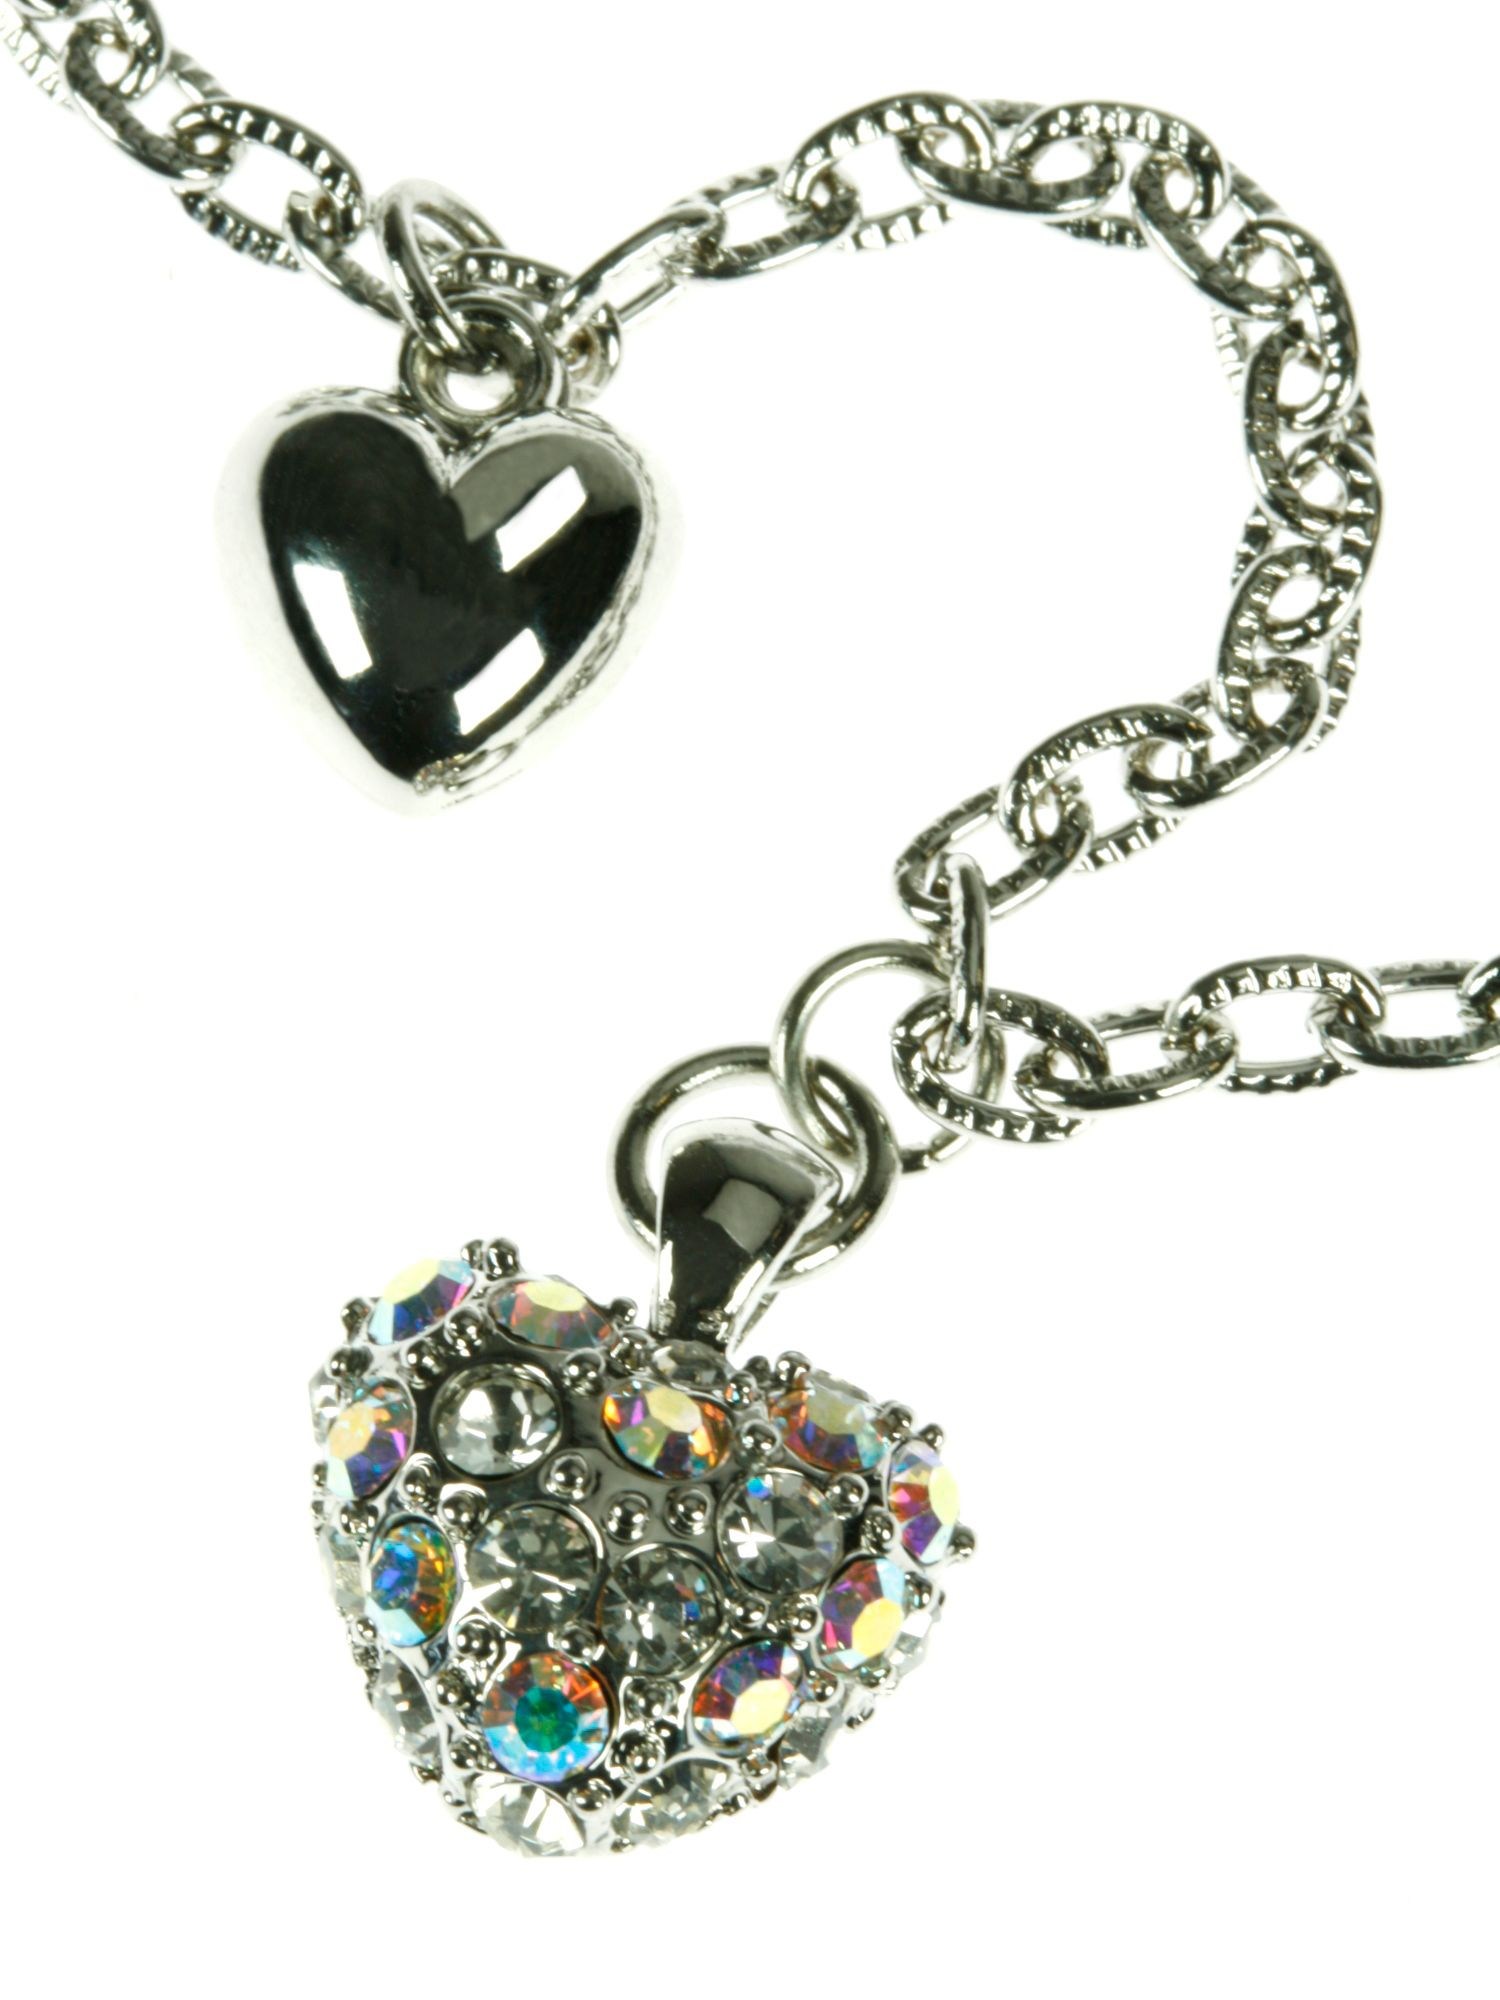 Rhodium plated 3 hearts charm bracelet